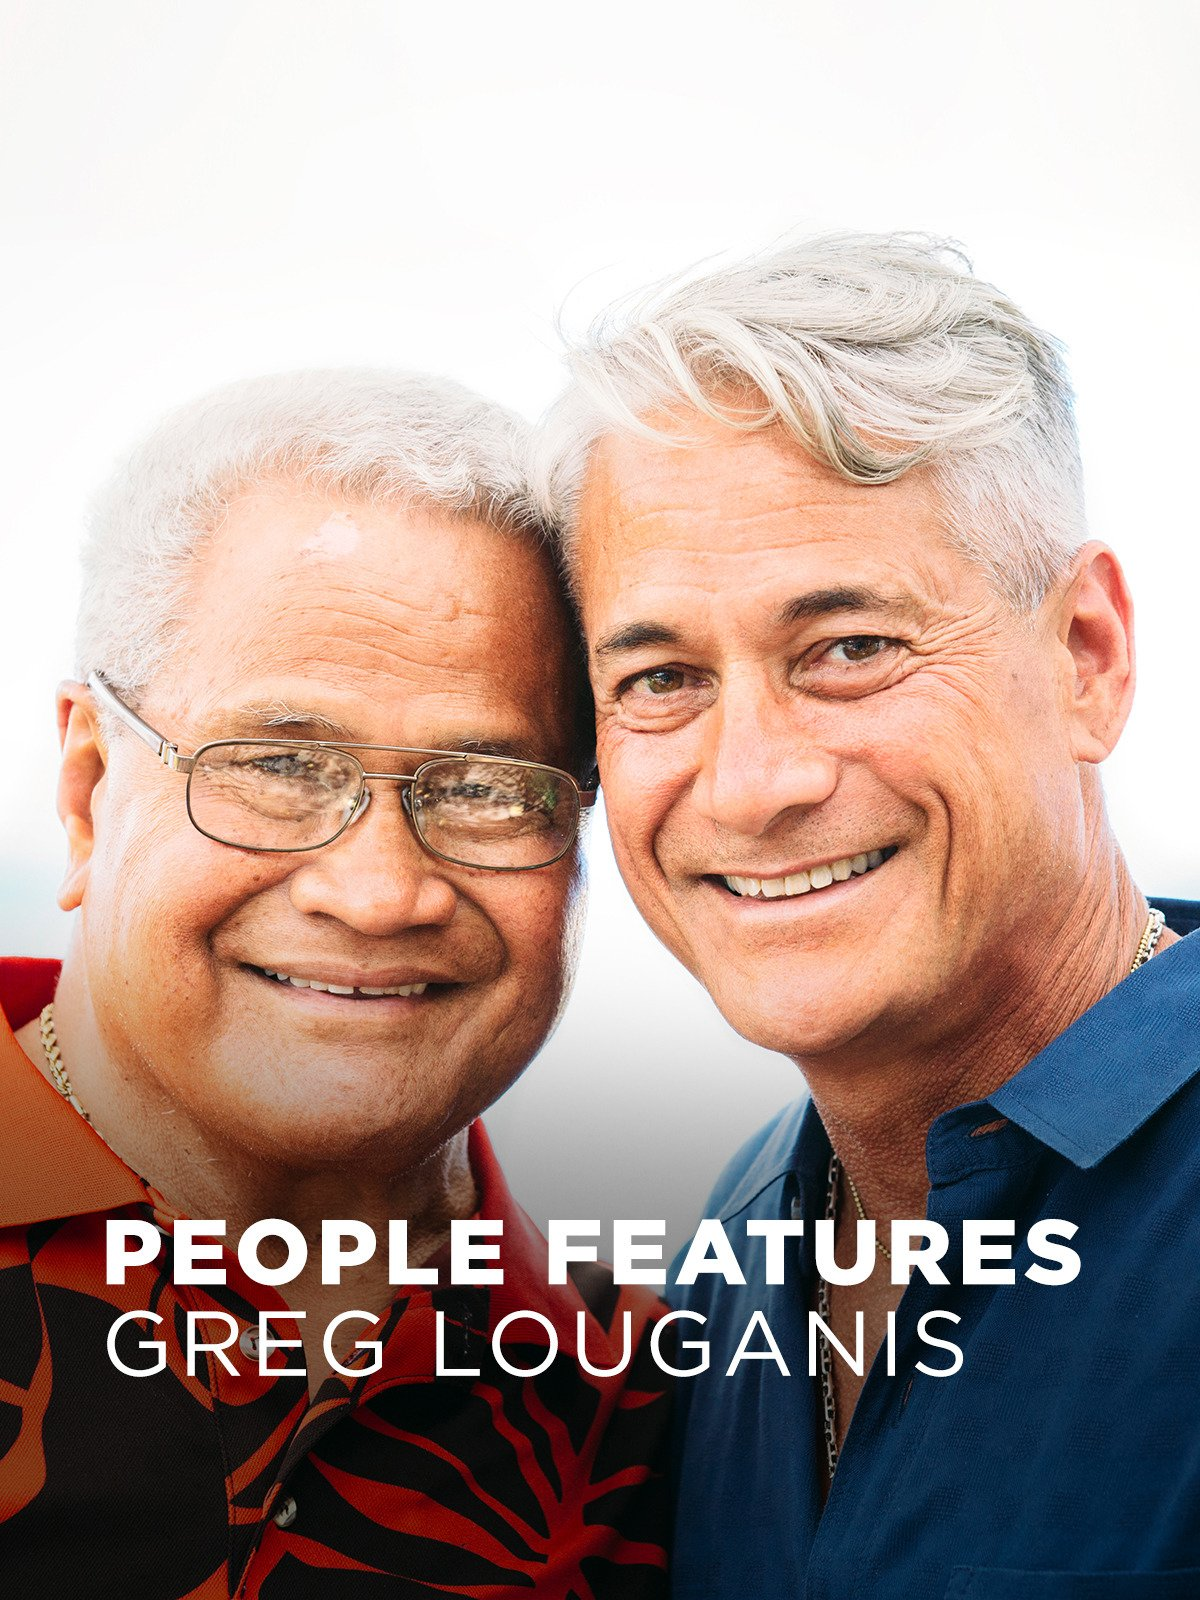 People Features: Greg Louganis